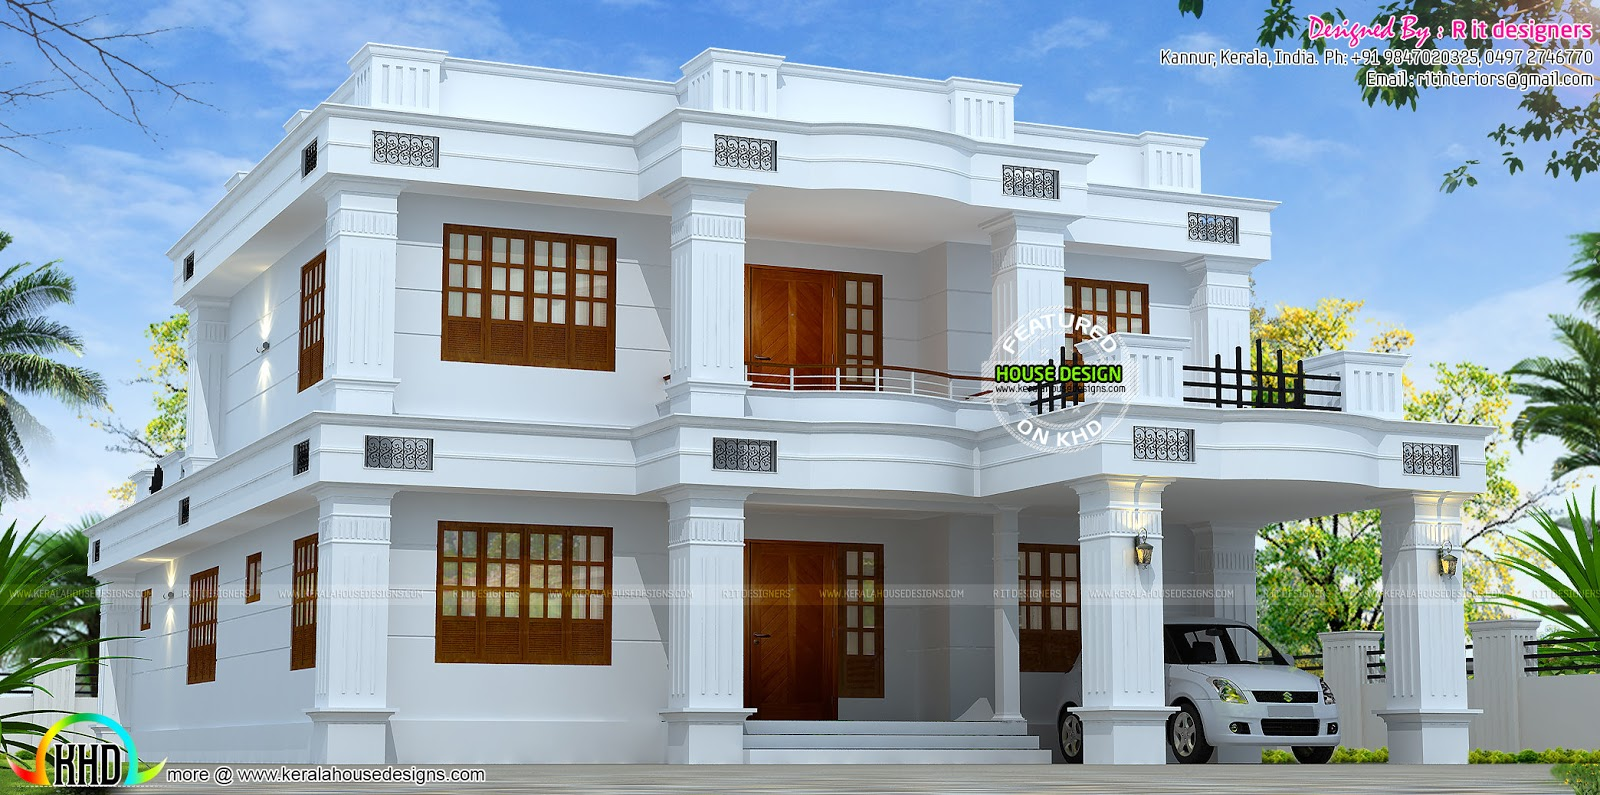 February 2016 kerala home design and floor plans for Home designs kerala photos